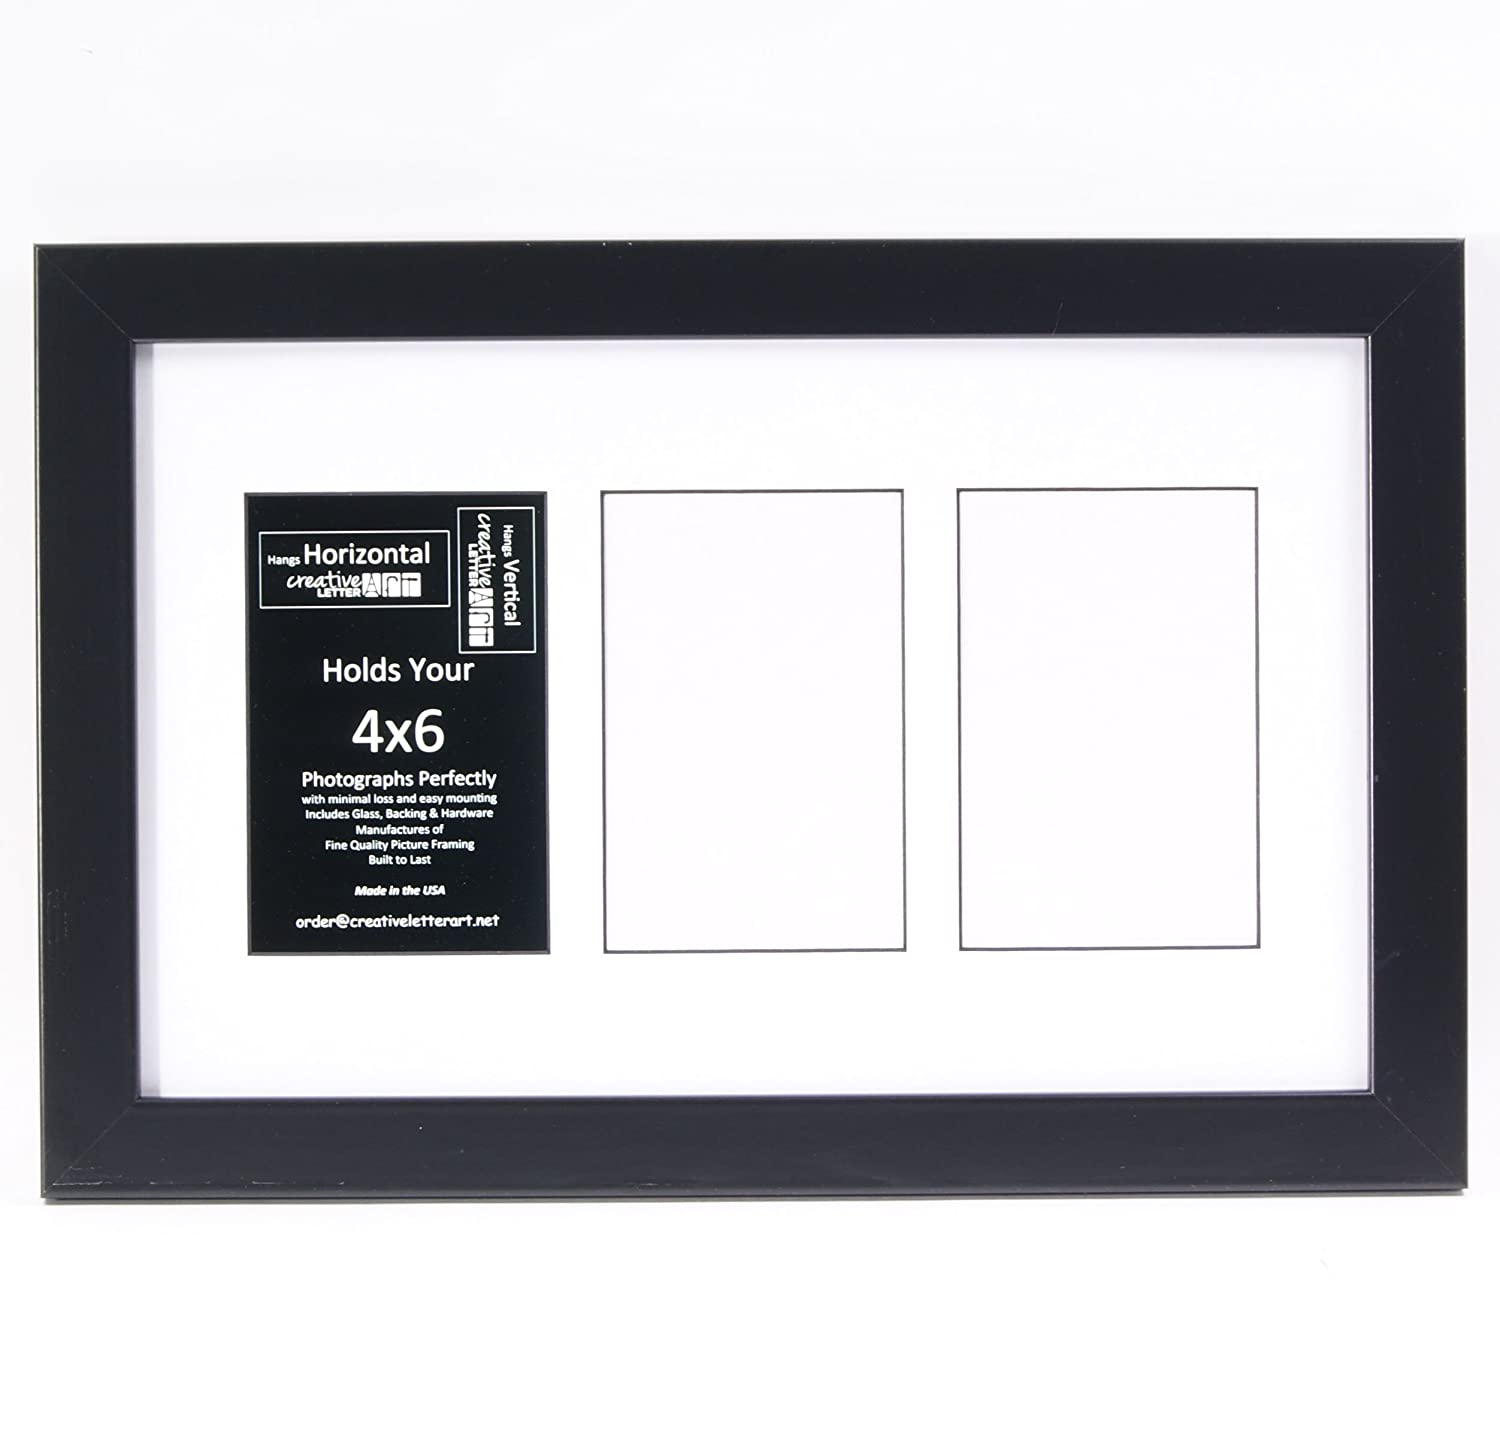 Amazon creativeletterart 8x10bk w 2 opening glass face amazon creativeletterart 8x10bk w 2 opening glass face black picture frame holds 4x6 media with white collage mat home kitchen jeuxipadfo Gallery